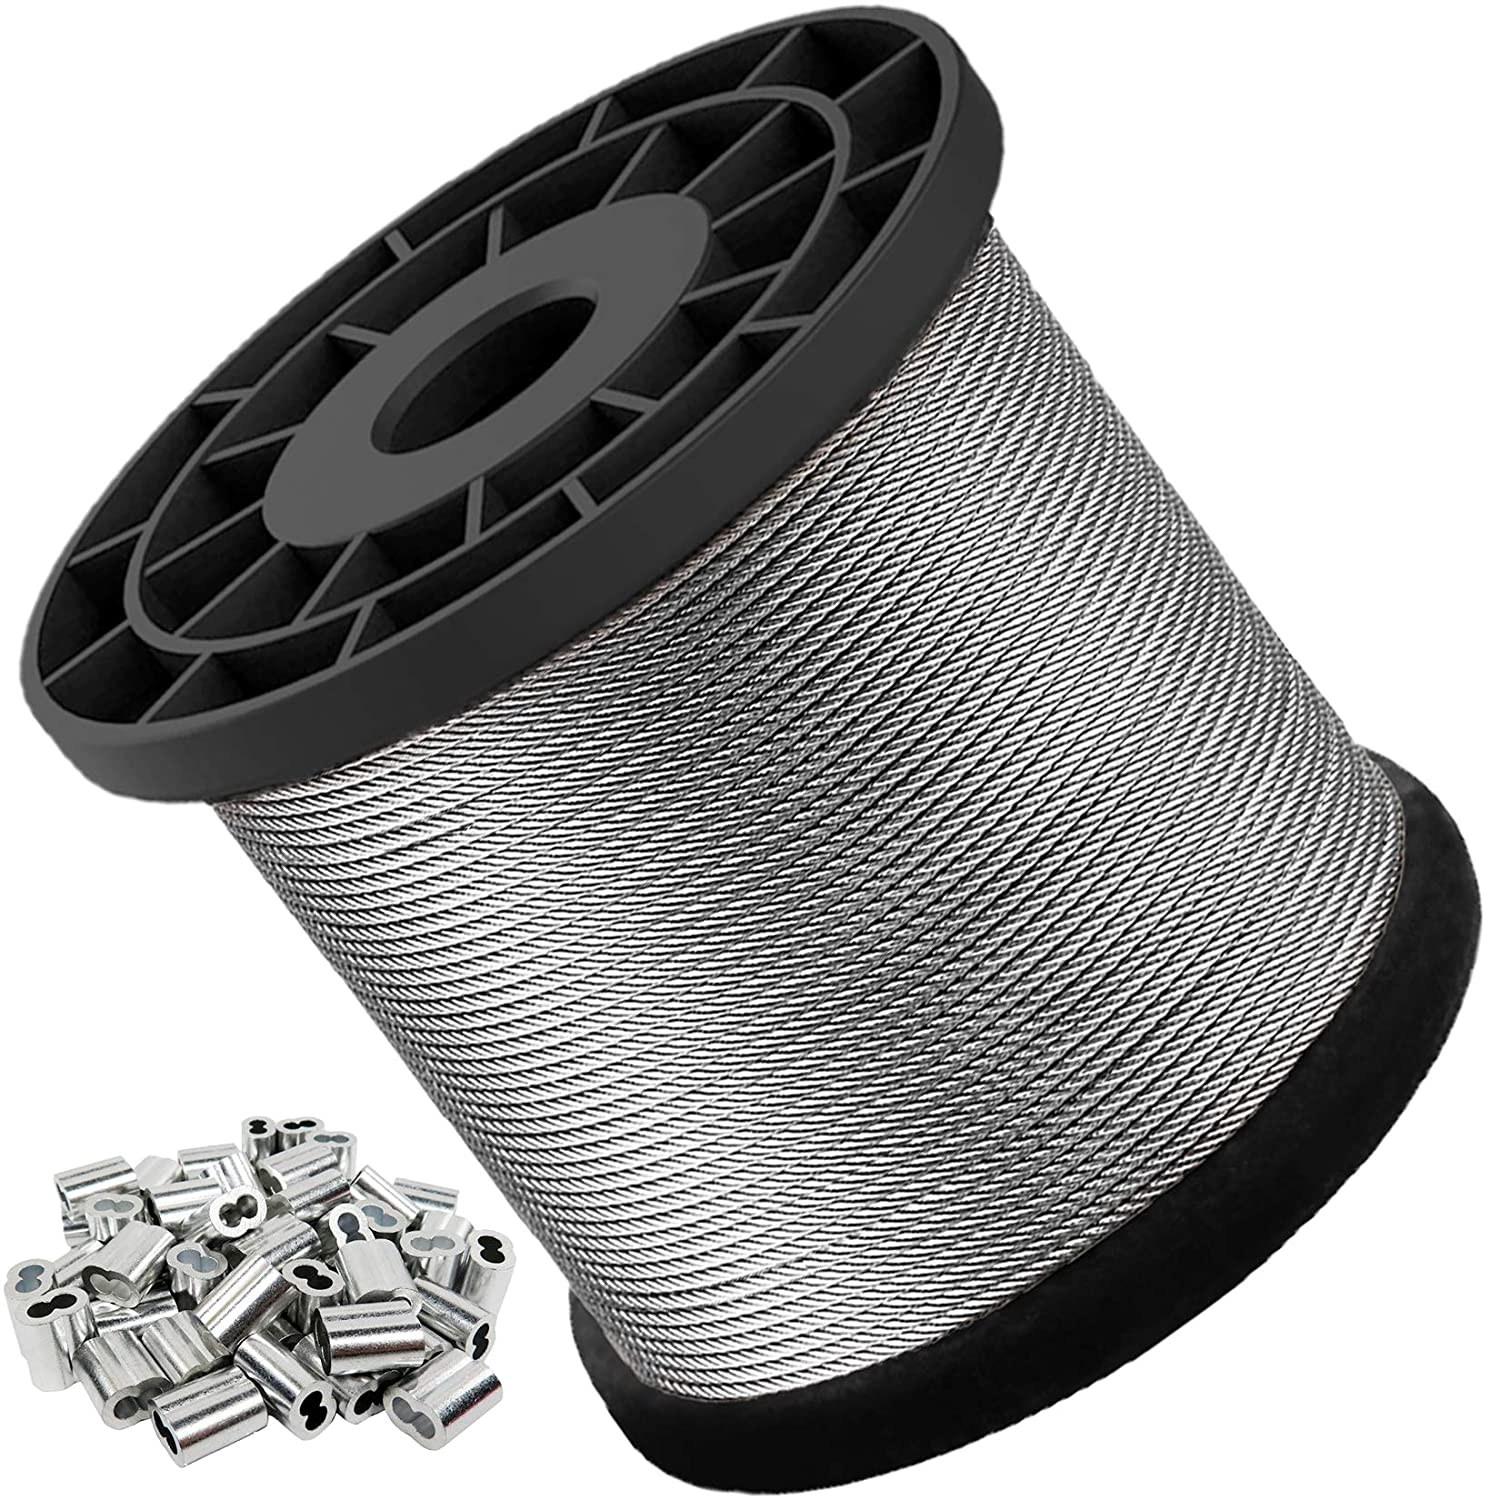 Wire Rope 1 16 304 Stainless Cable Aircraft C New Max 81% OFF color Steel